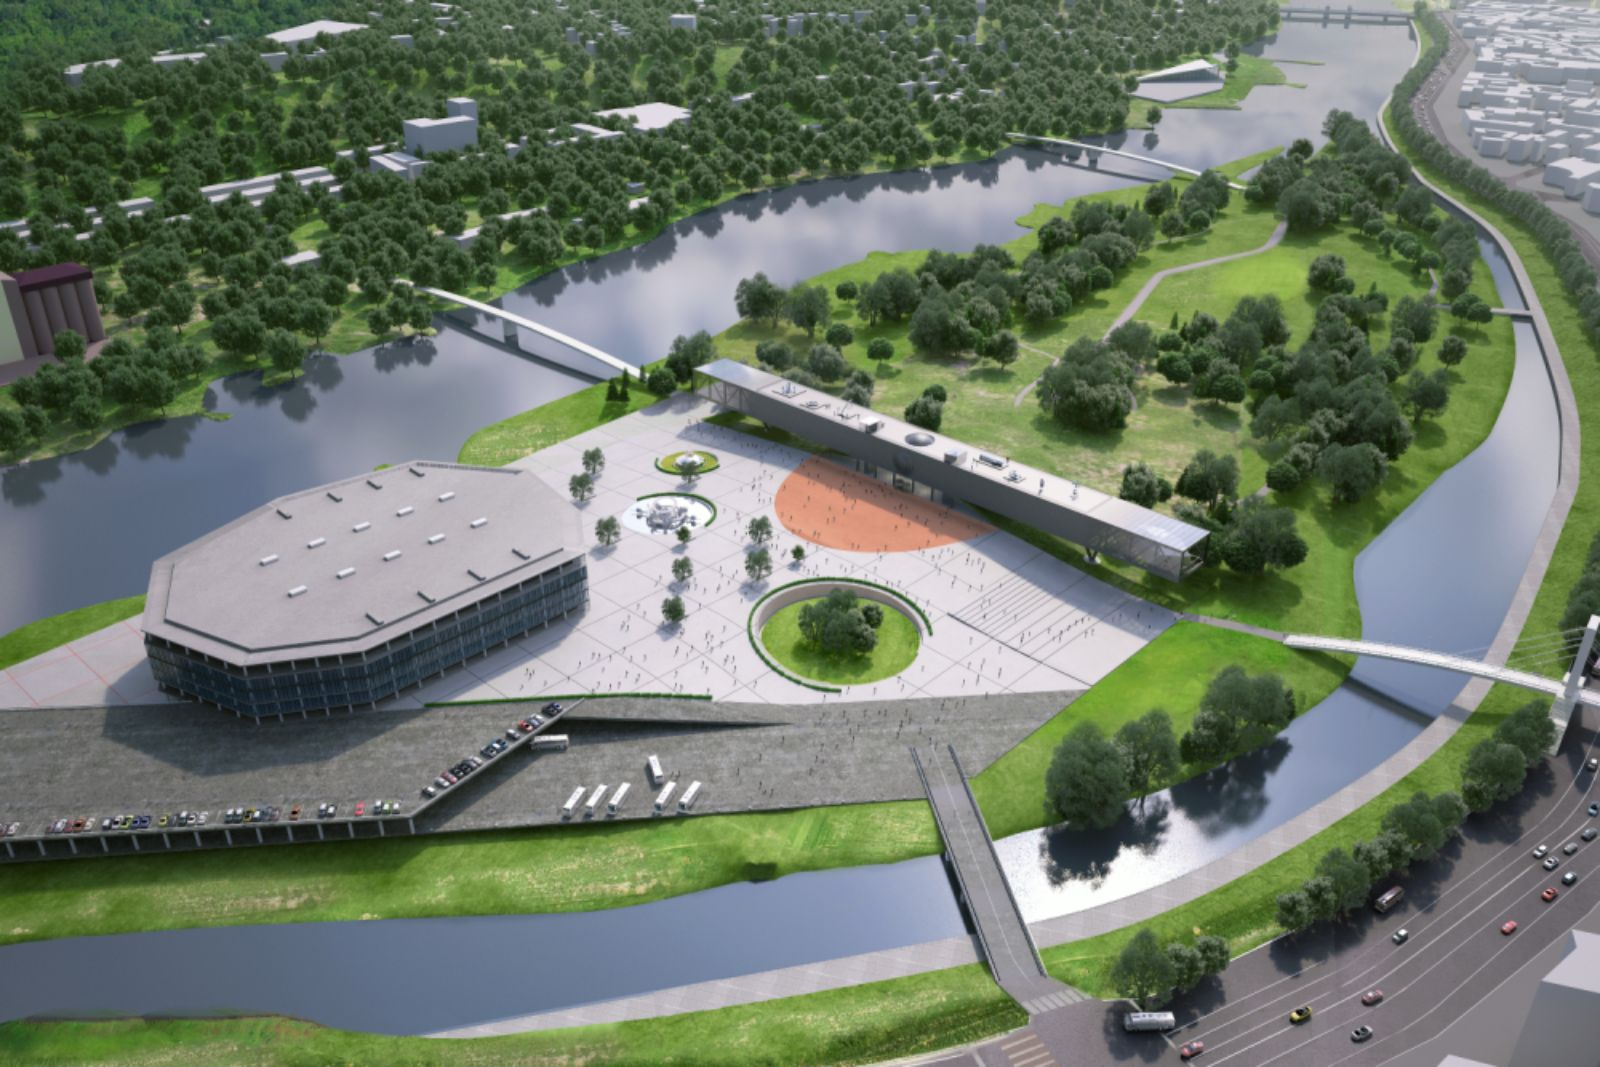 The National Science and Innovation Centre of Lithuania